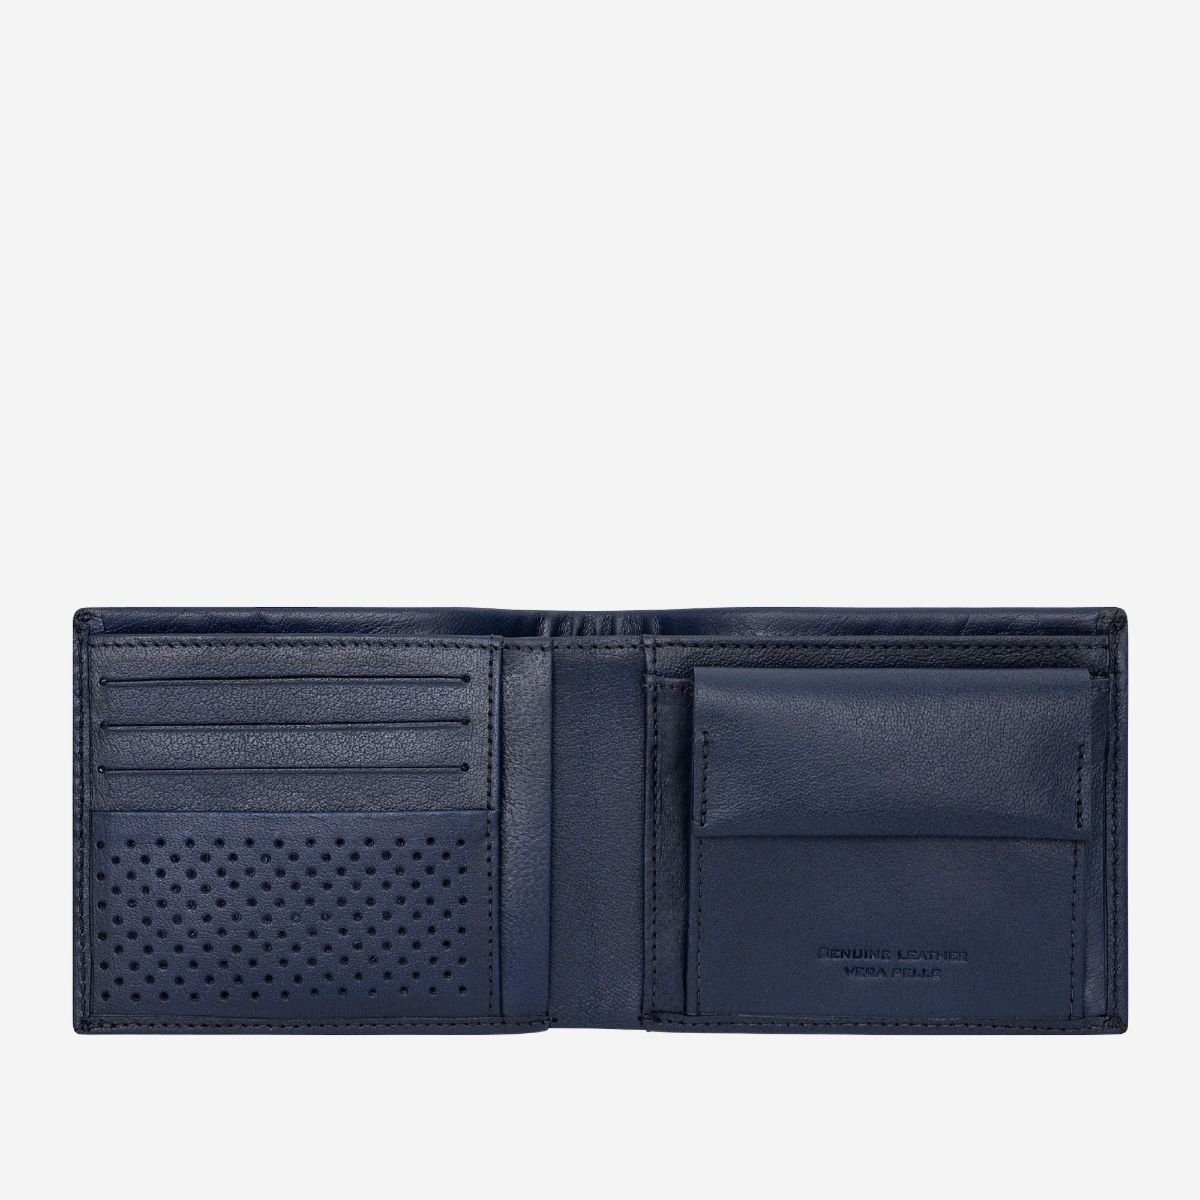 Mens Minimalist Leather Wallet with Coin Holder - Blue